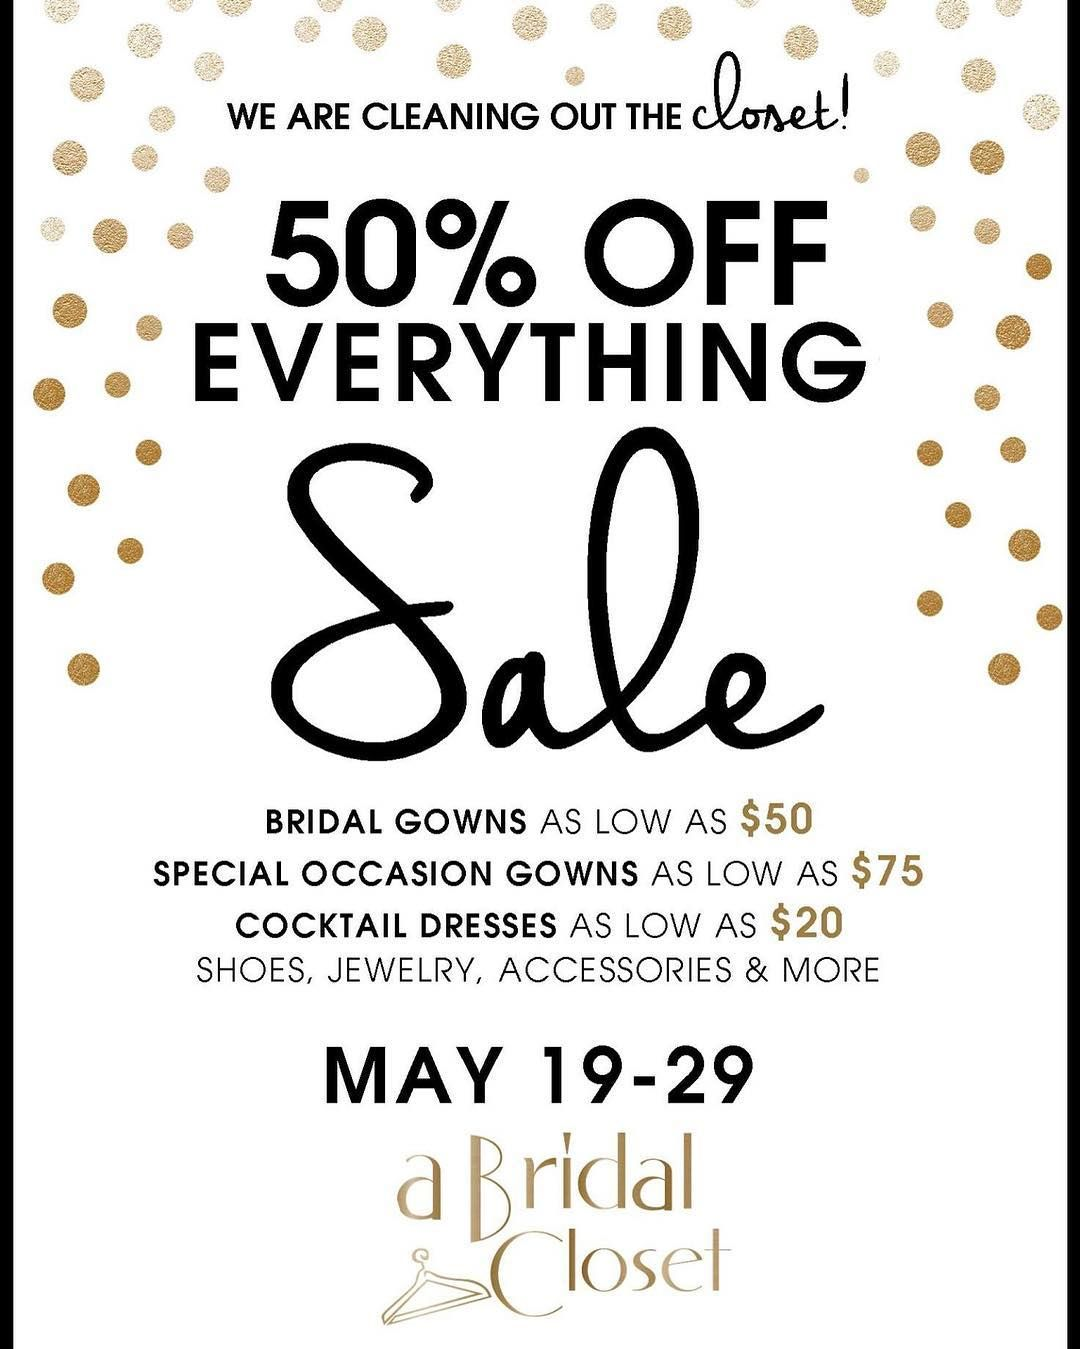 BIG ANNOUNCEMENT! May 19th-29th we are having a massive sale! 50% off everything in the store including jewelry bridesmaids dresses special occasion dresses and of course bridal!  Make sure to stop by and pick up you wedding needs!  #abridalcloset #bridetobe #dallas #dfw #sale #weddingdress #bridesmaids #mob #mog #wedding #cleaningoutthecloset #bridal #weddingindustry #outlet #mustgo by abridalcloset